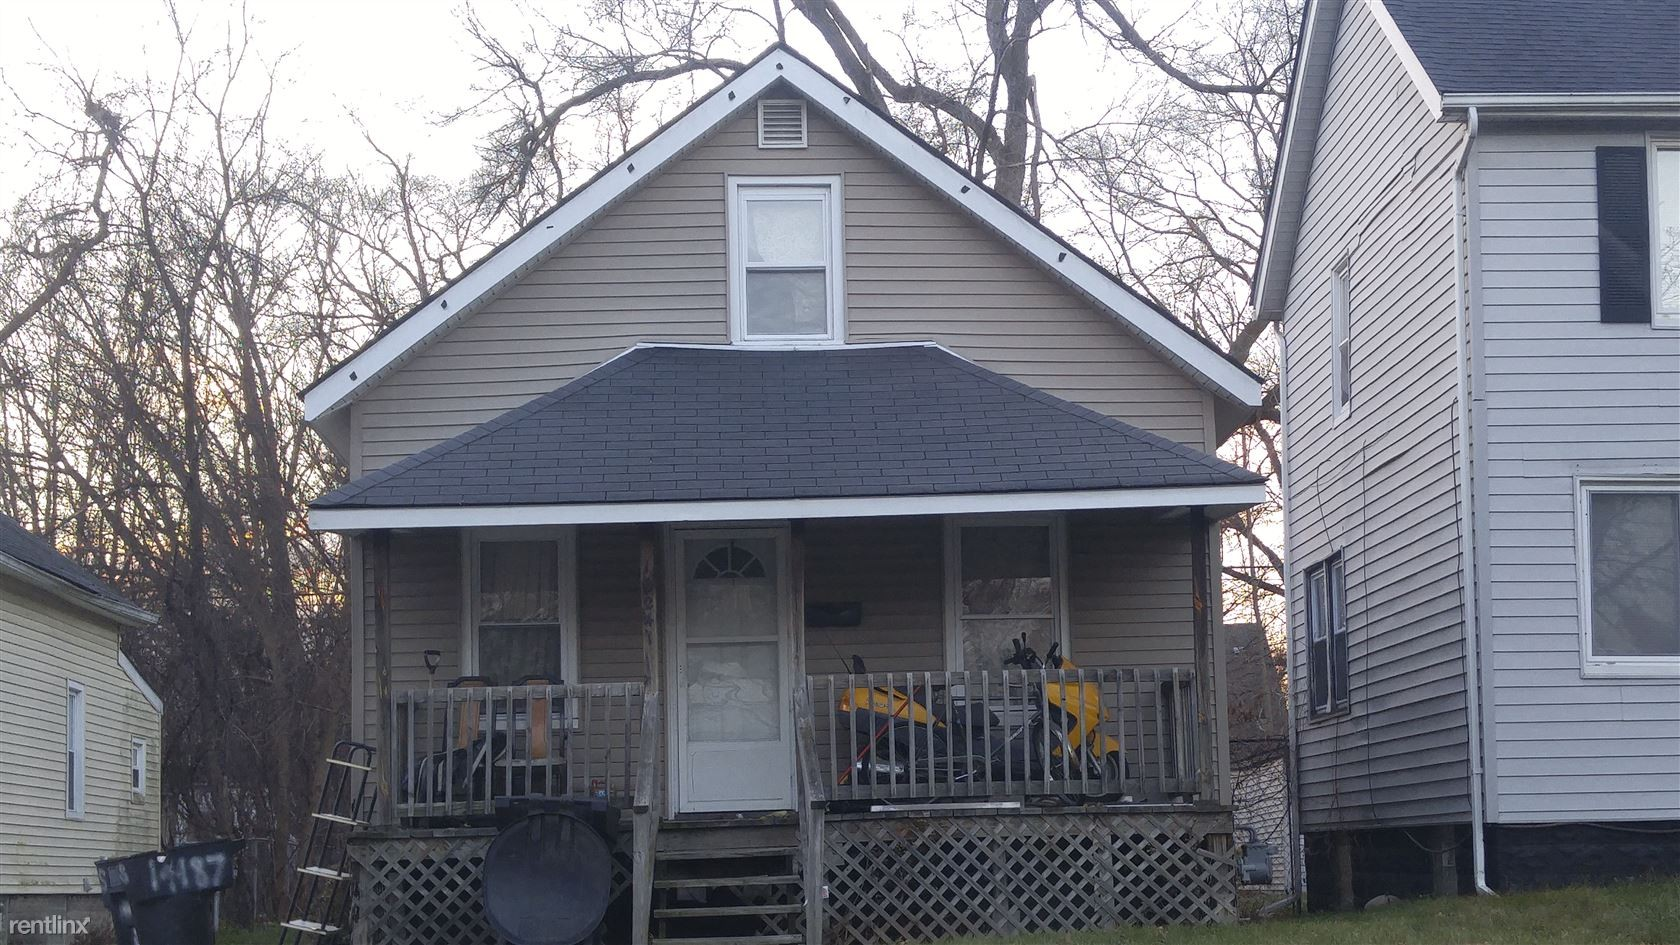 16241 Robson St Detroit Mi 48235 2 Bedroom House For Rent For 675 Month Zumper